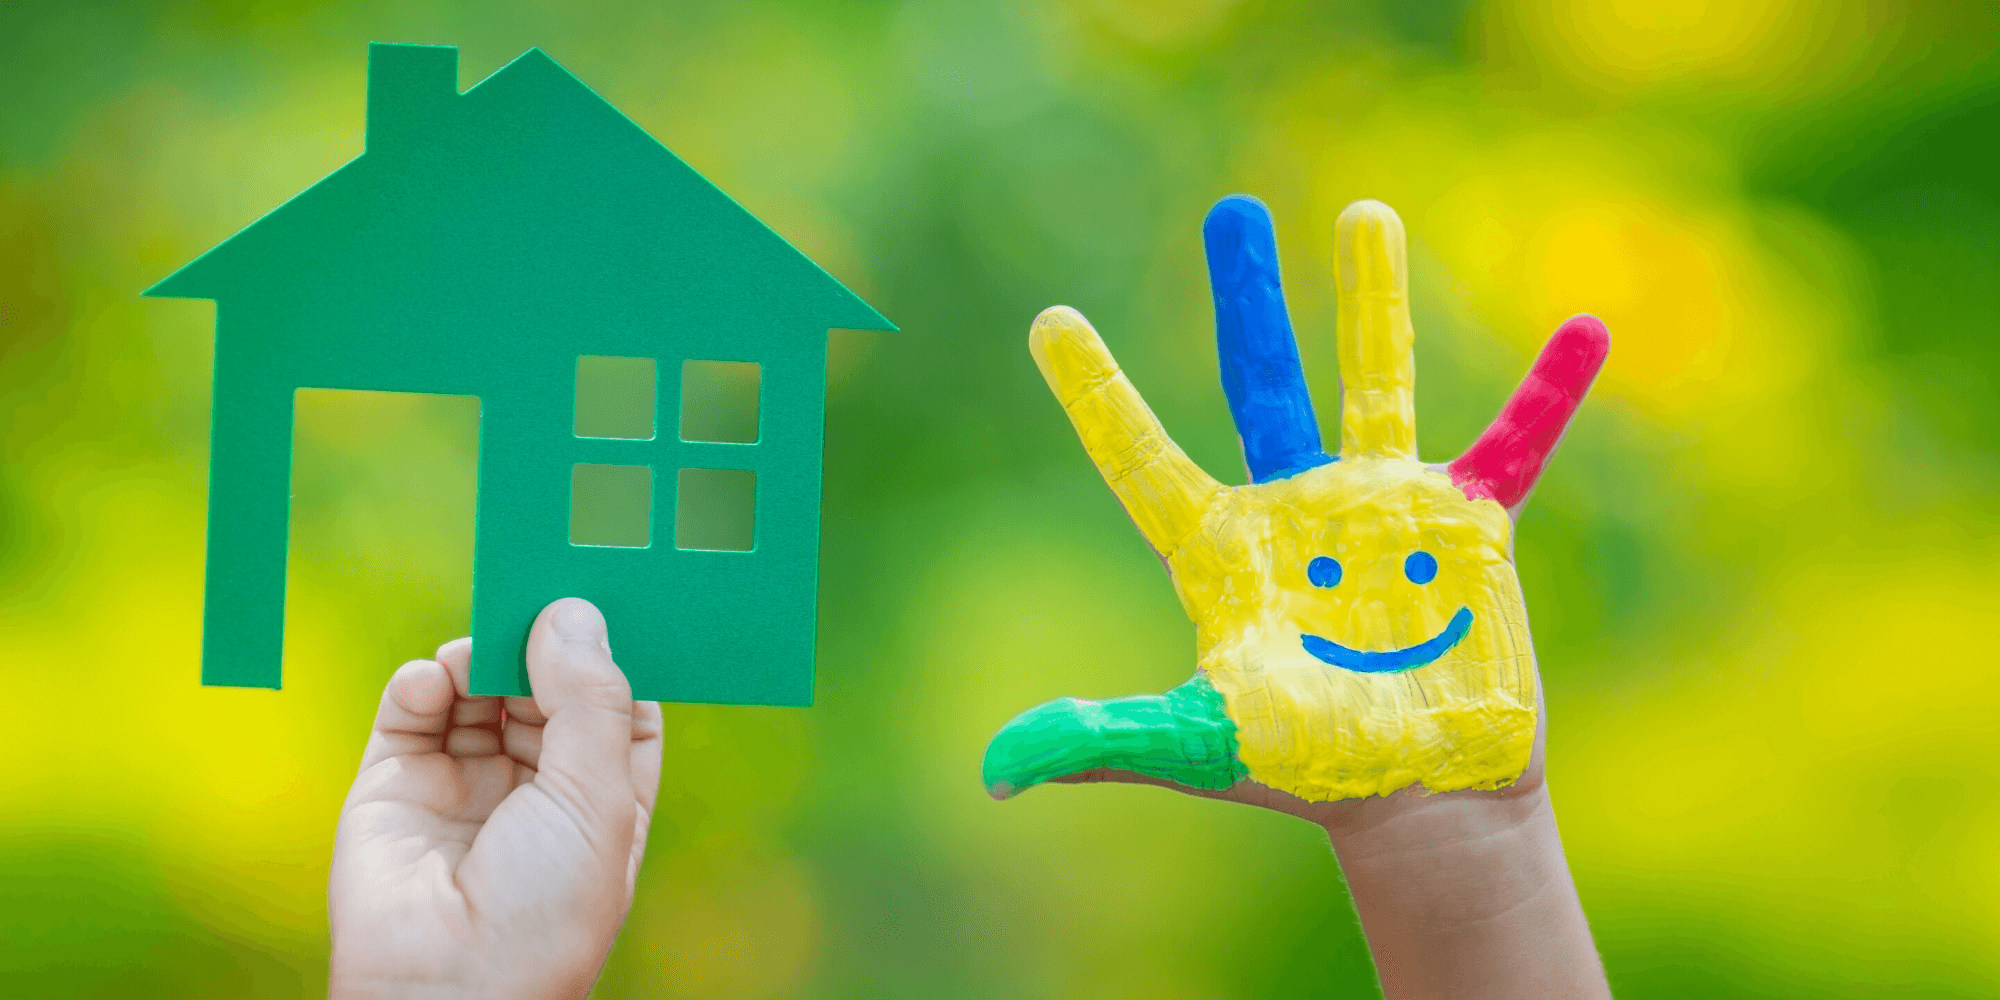 Little child holding a paper cutout house and a painted hand